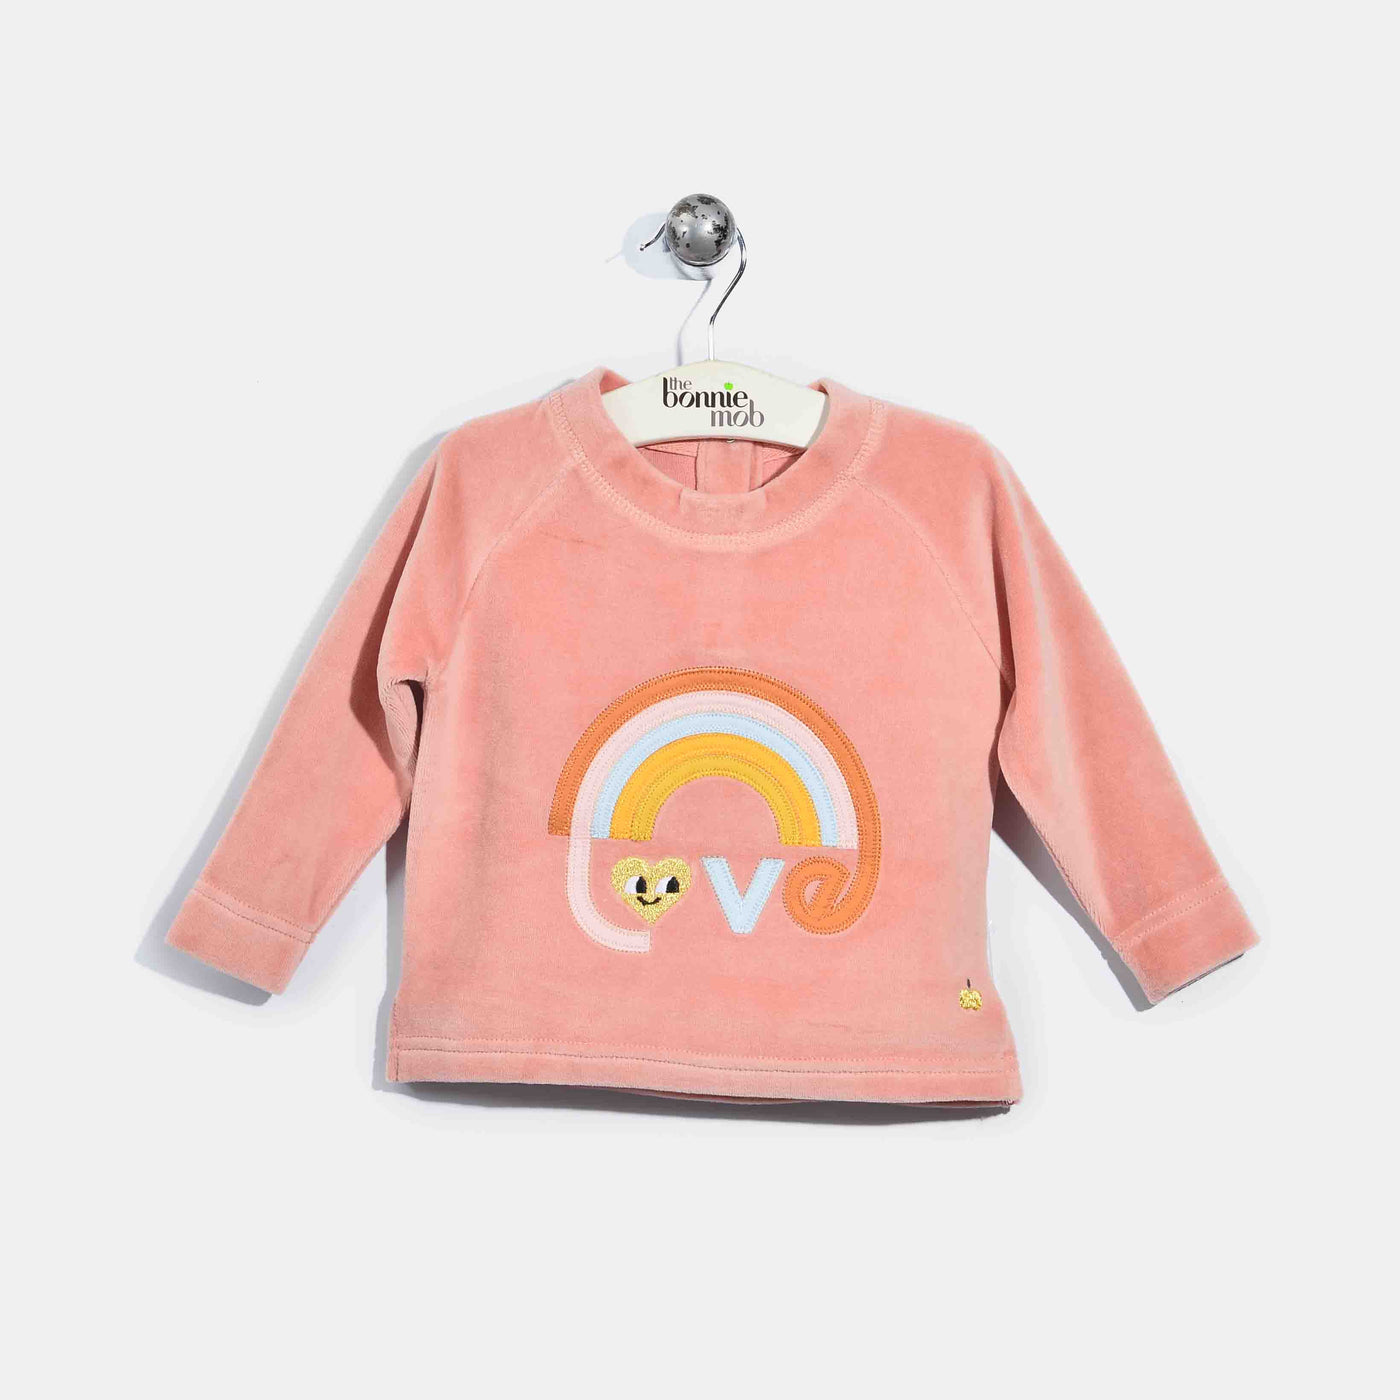 L-CLAUDE-Velour Applique Jumper-Baby Girl-Pink